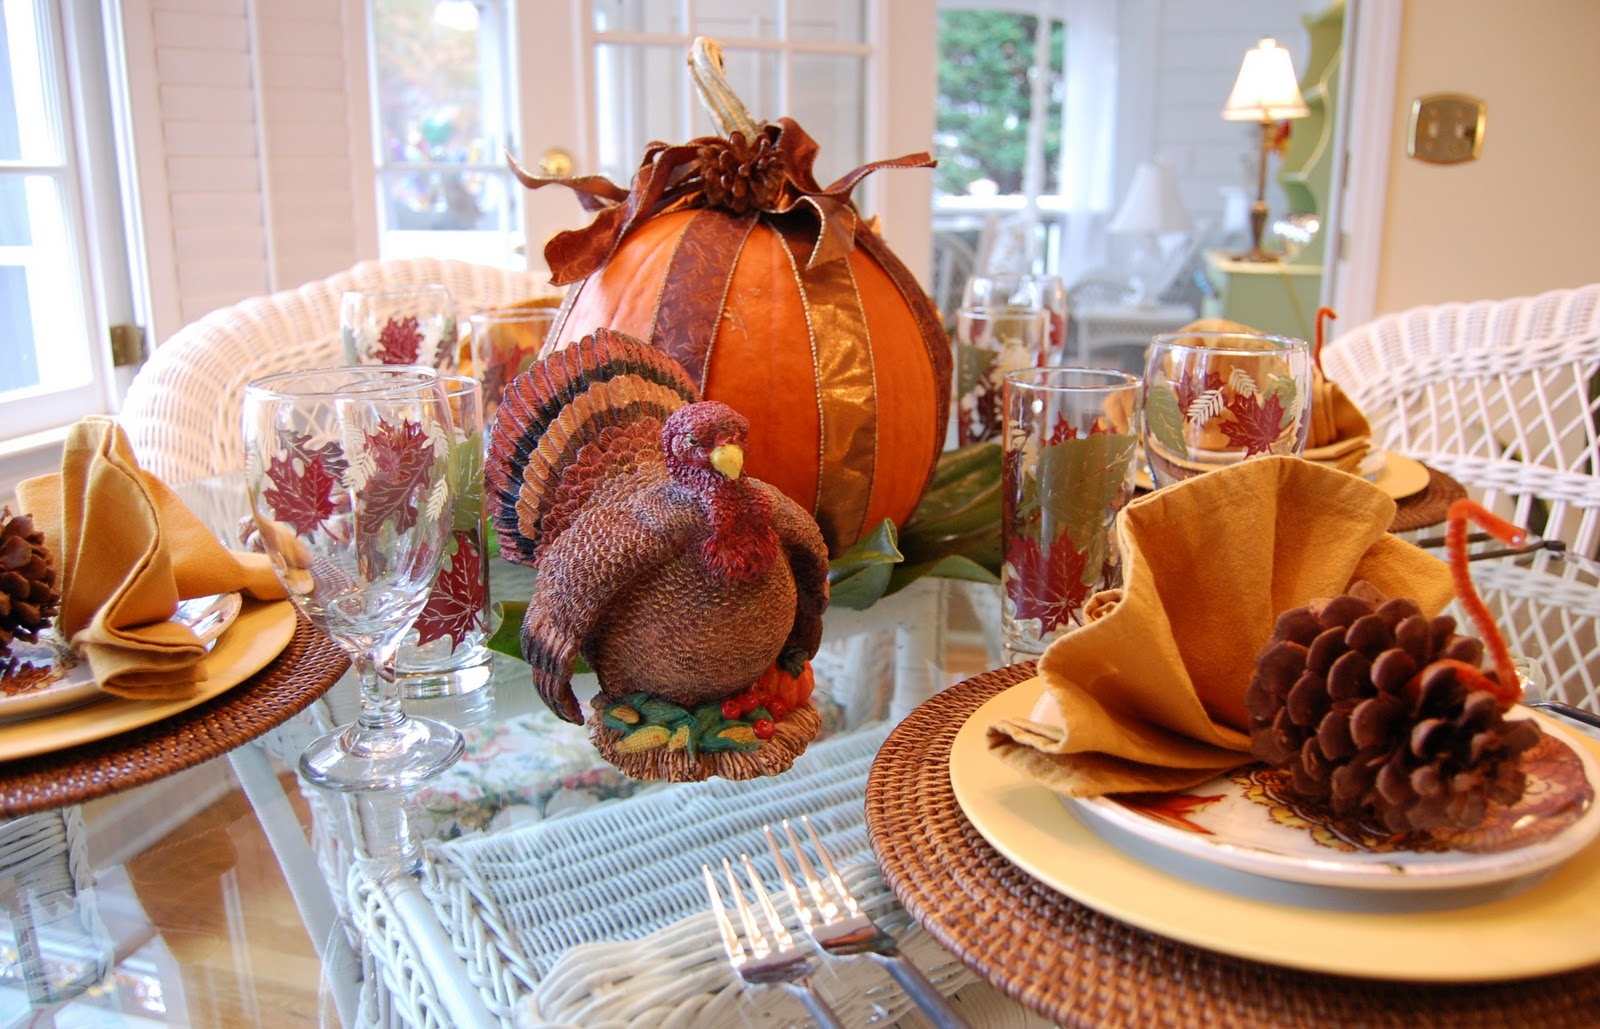 Make this Thanksgiving day easy and delicious with our Thanksgiving recipes, including tasty appetizers and yummy desserts. We'll also show you how to cook a turkey in our simple step-by-step guide. Plus, create a memorable holiday with our ideas for menus, table settings, centerpieces, and decorations. Whether you're hosting Thanksgiving dinner or are a guest at a potluck, we can help you.